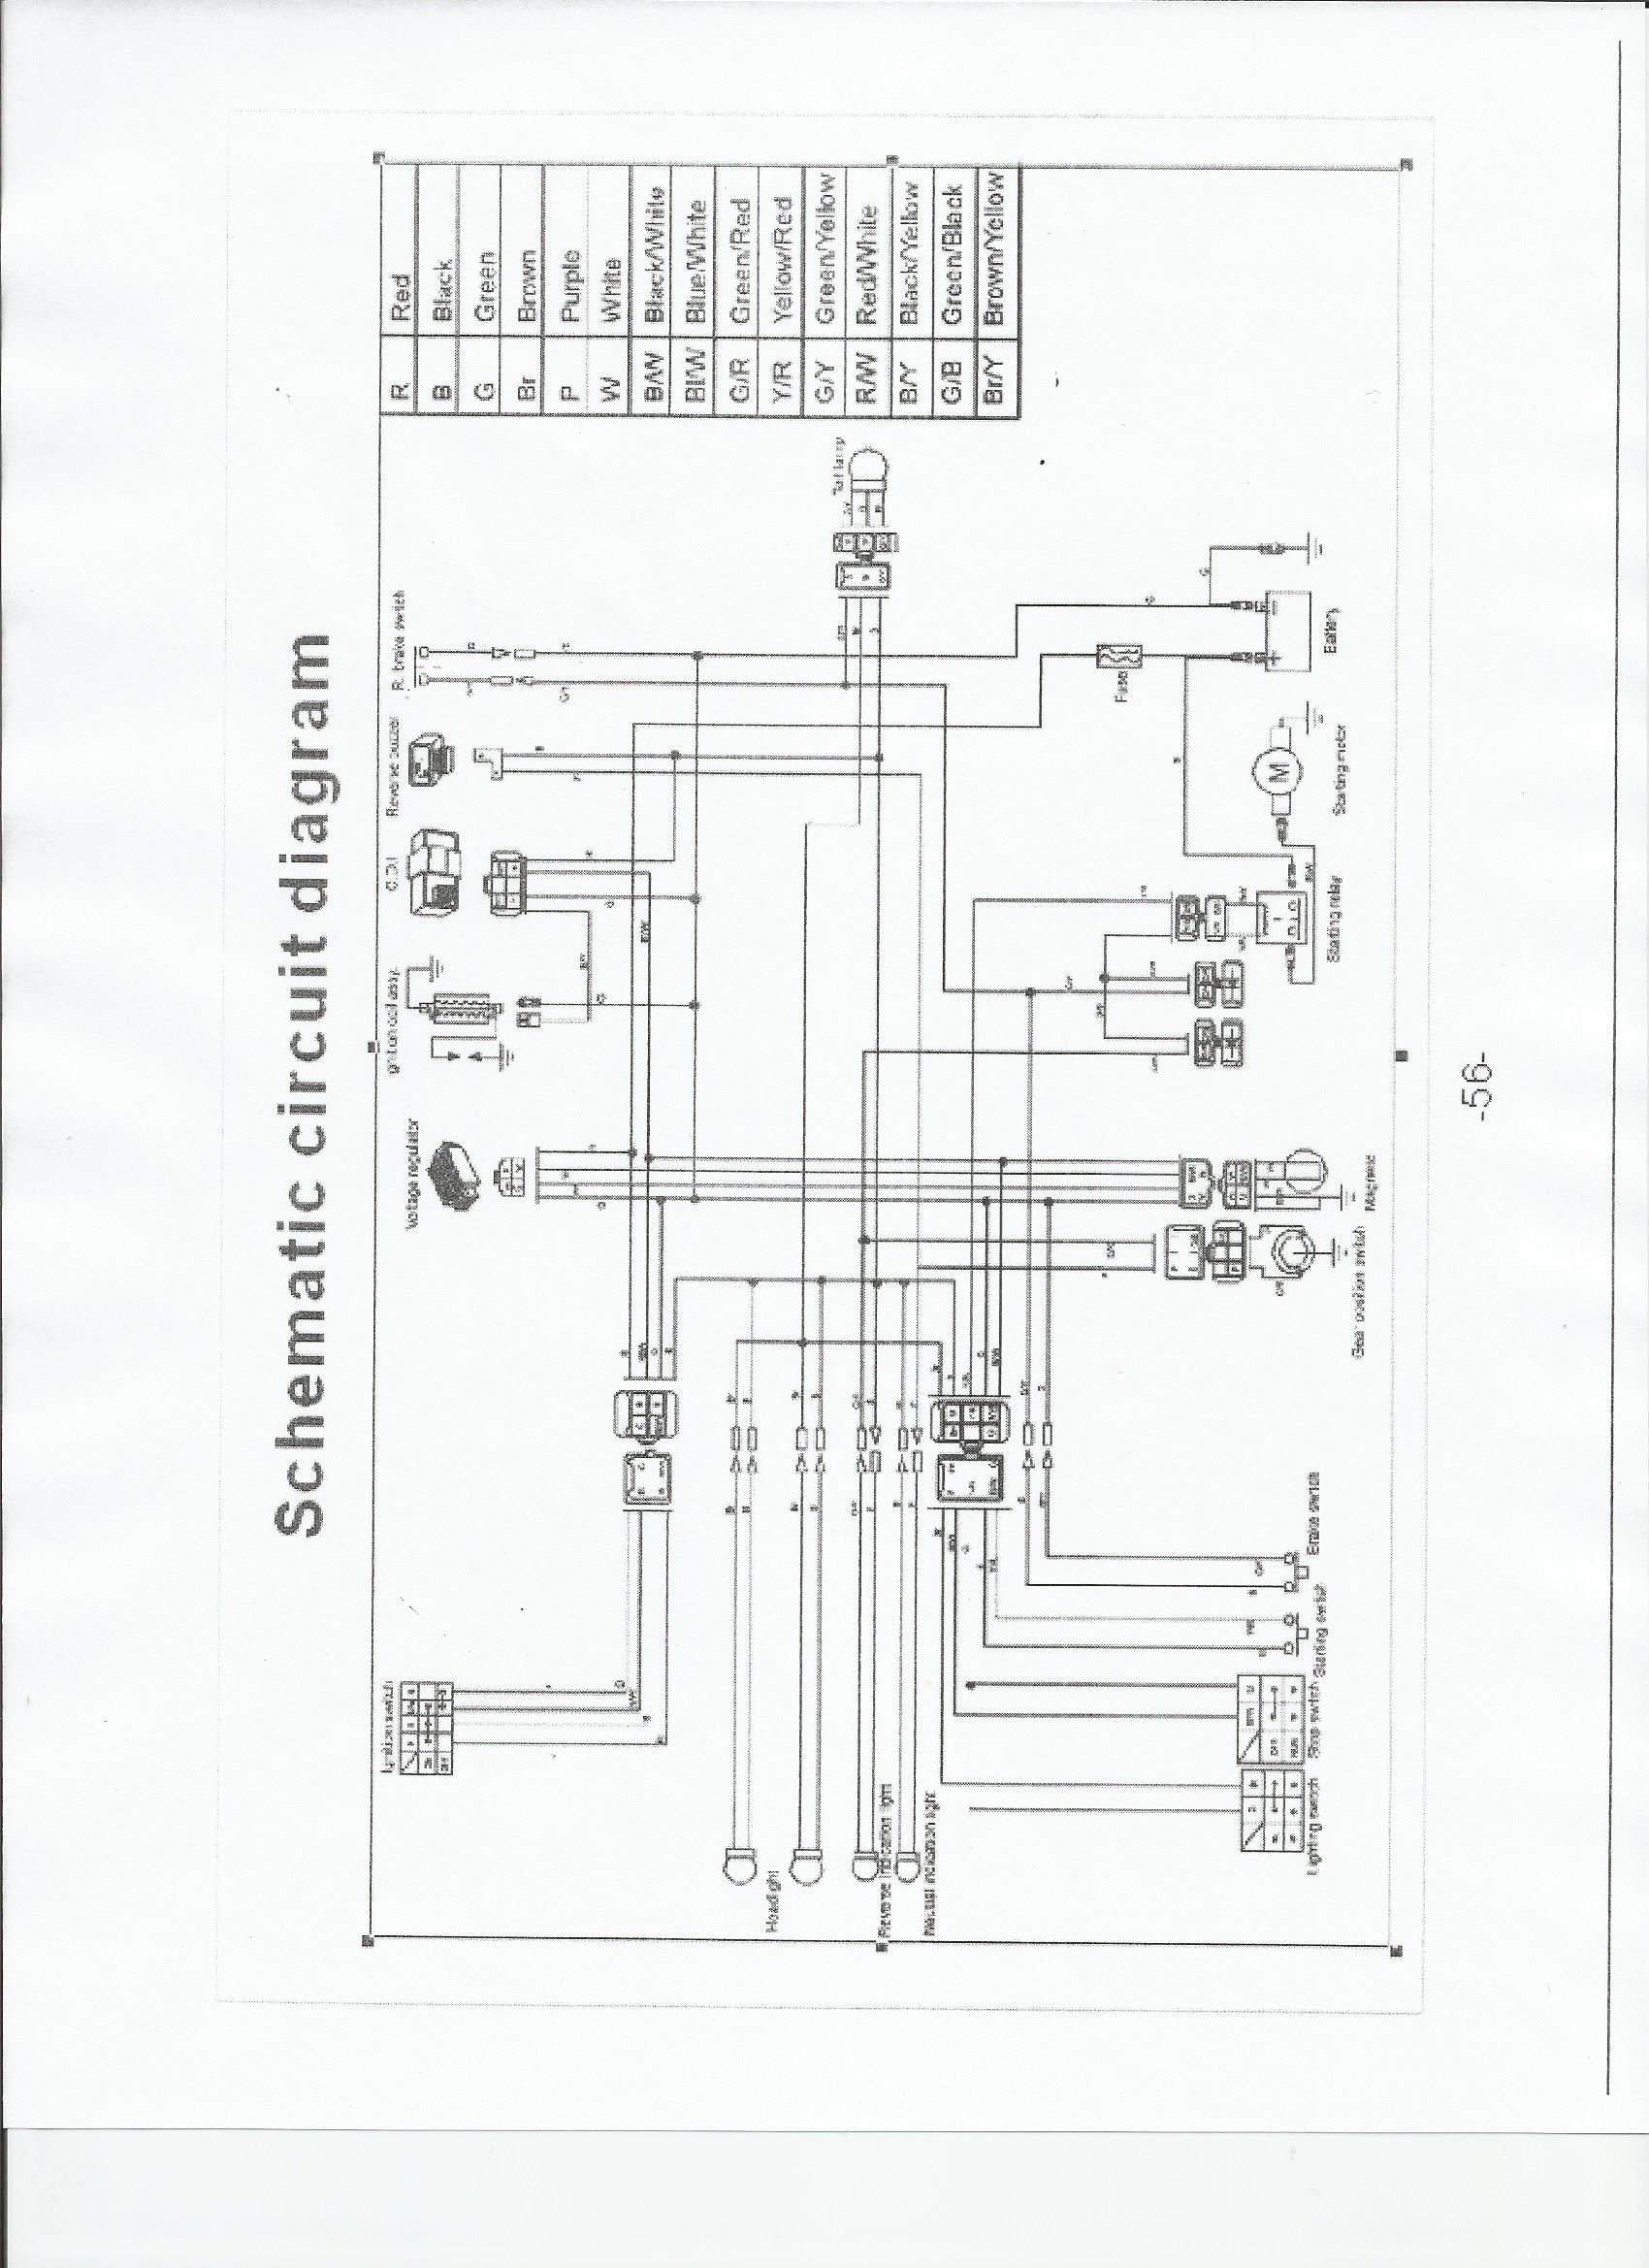 Taotao Ata 125d Wiring Diagram Tao Tao 50Cc Moped Wiring-Diagram ...